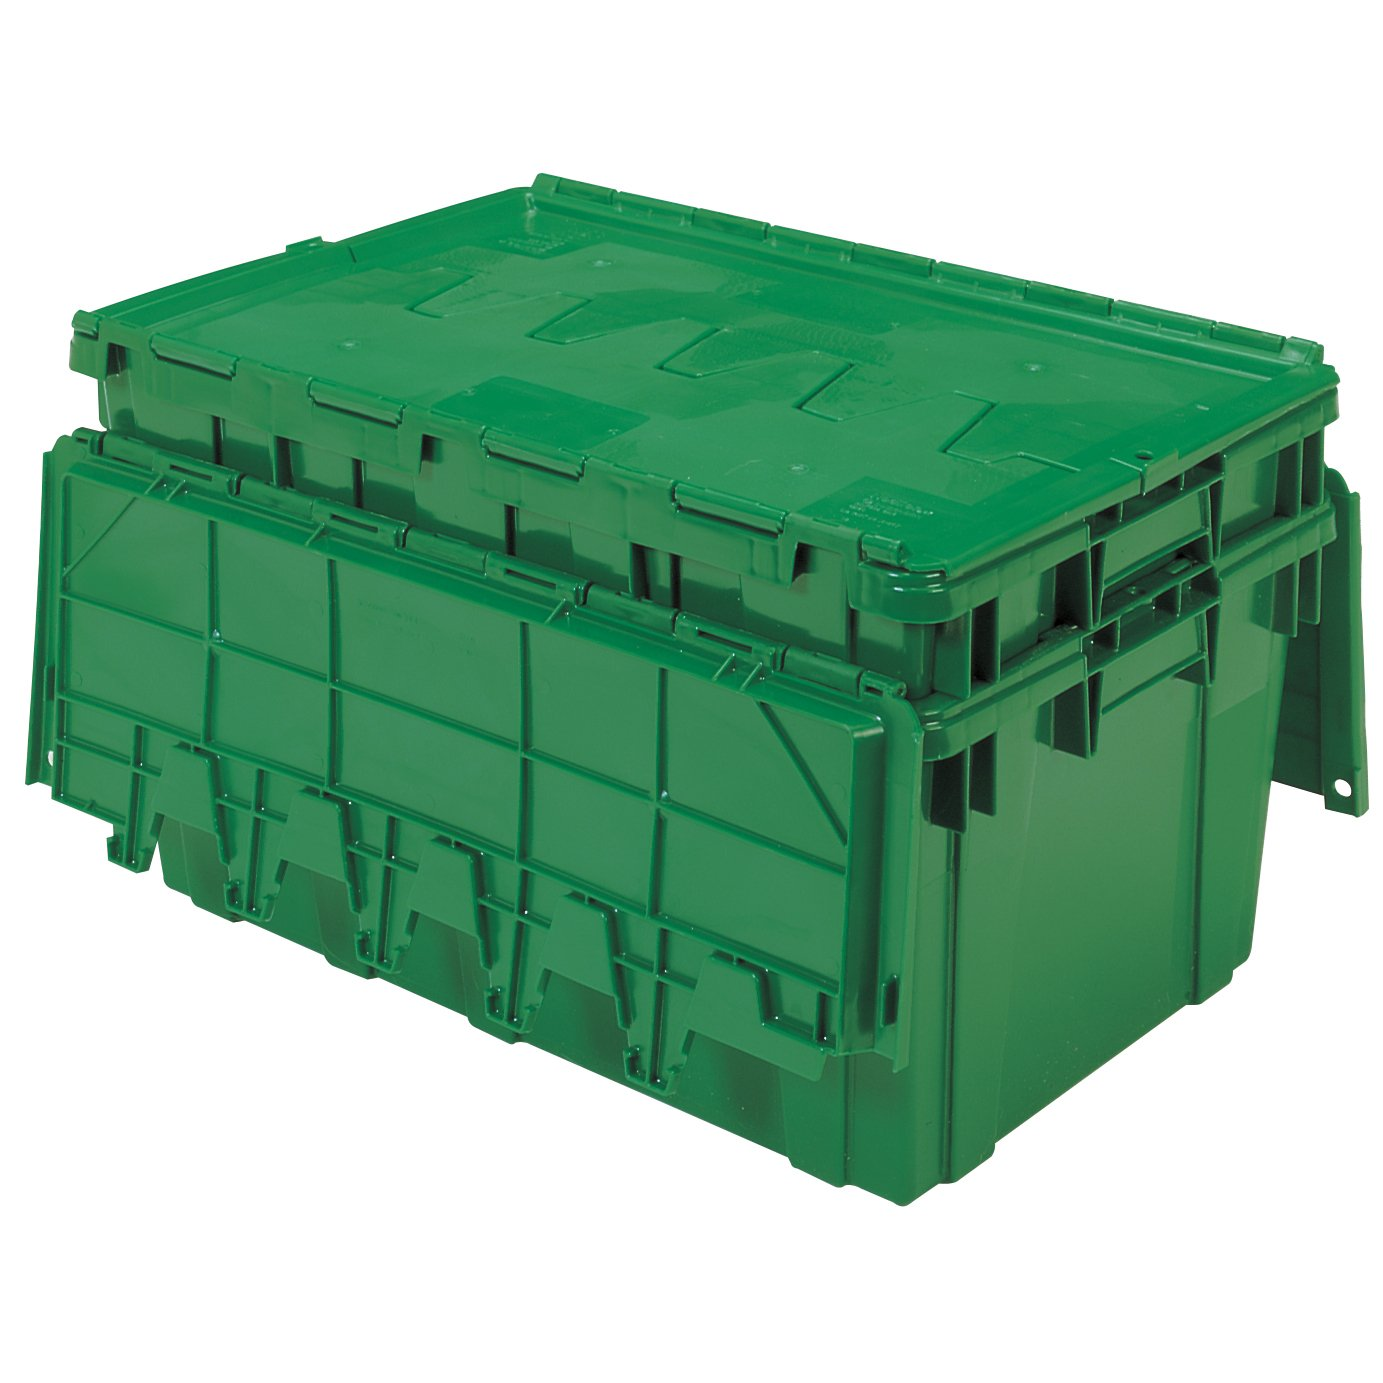 Buckhorn AR2717120204000 Attached Lid Flip Top Storage and Distribution Plastic Tote, 27-Inch x 17-Inch x 12-Inch, Green